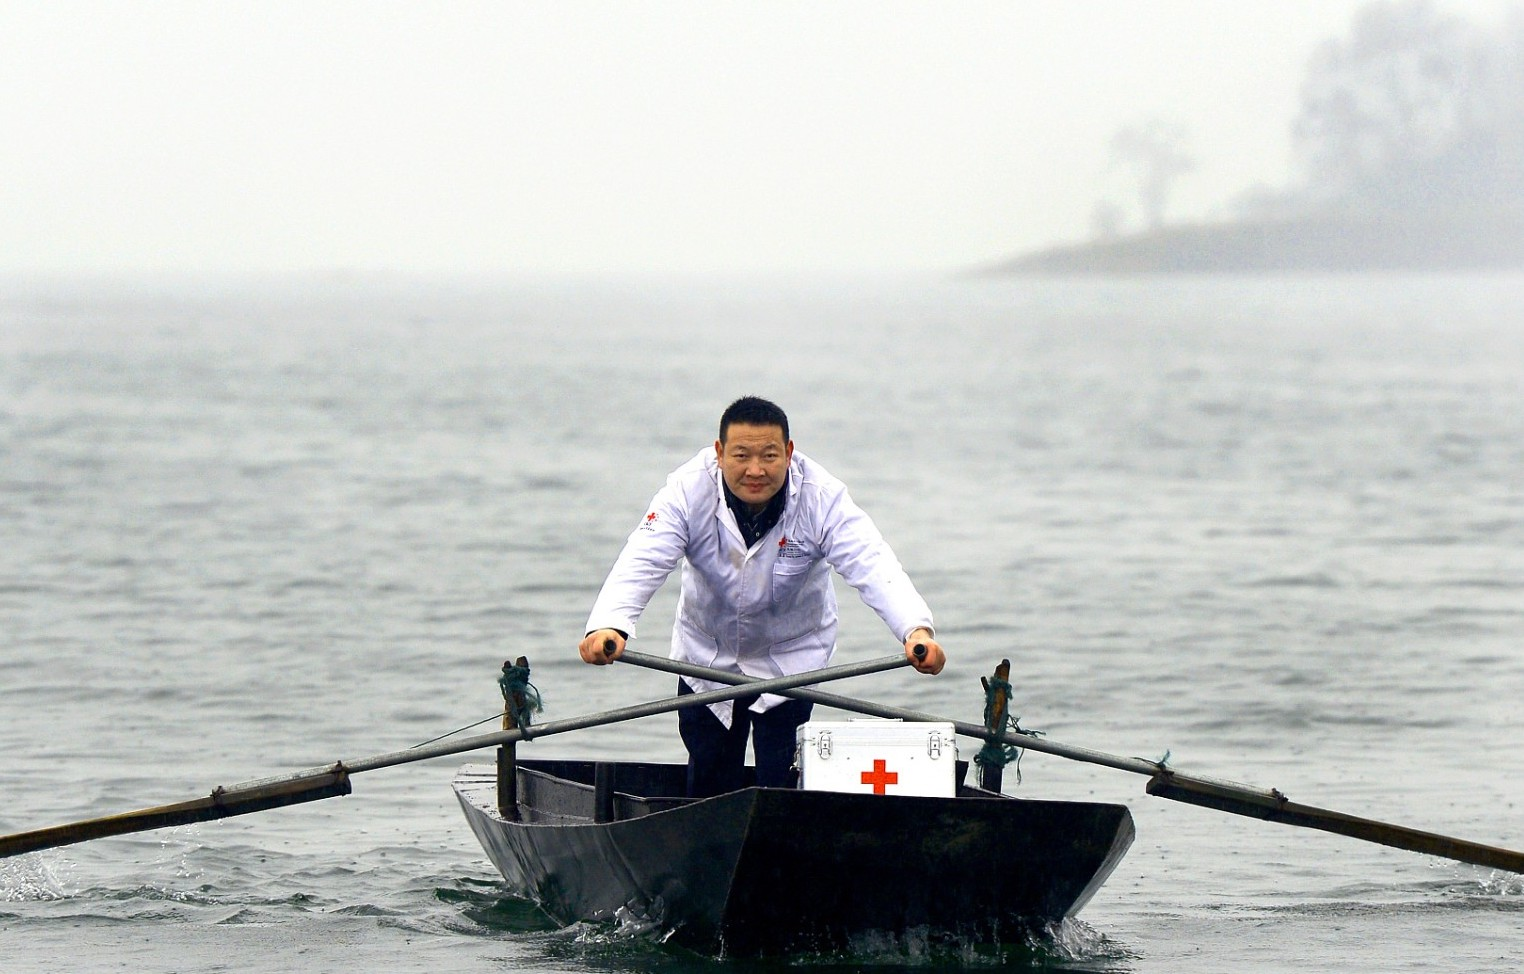 Doctor builds clinic on boat to give medical assistance to islanders